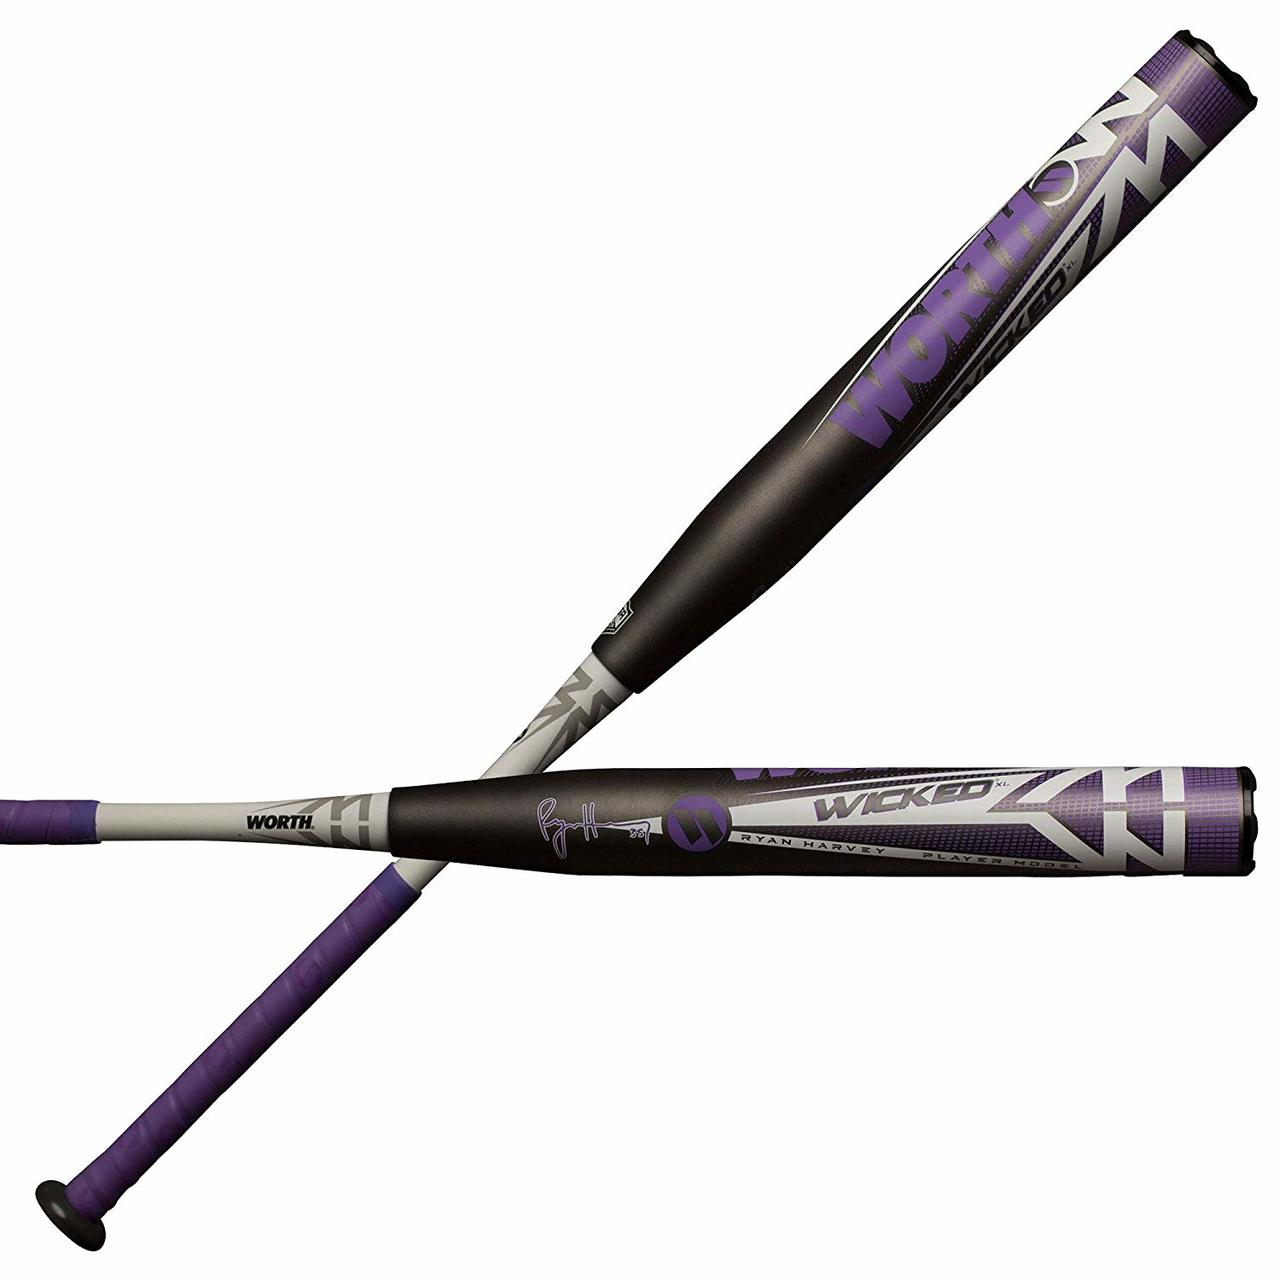 worth-wicked-xl-ryan-harvey-asa-wkrhma-slowpitch-softball-bat-34-inch-26-oz WKRHMA-3-26 Worth 658925041143 2 1/4 Inch Barrel Diameter 3-Piece Composite XL Weighting Approved for